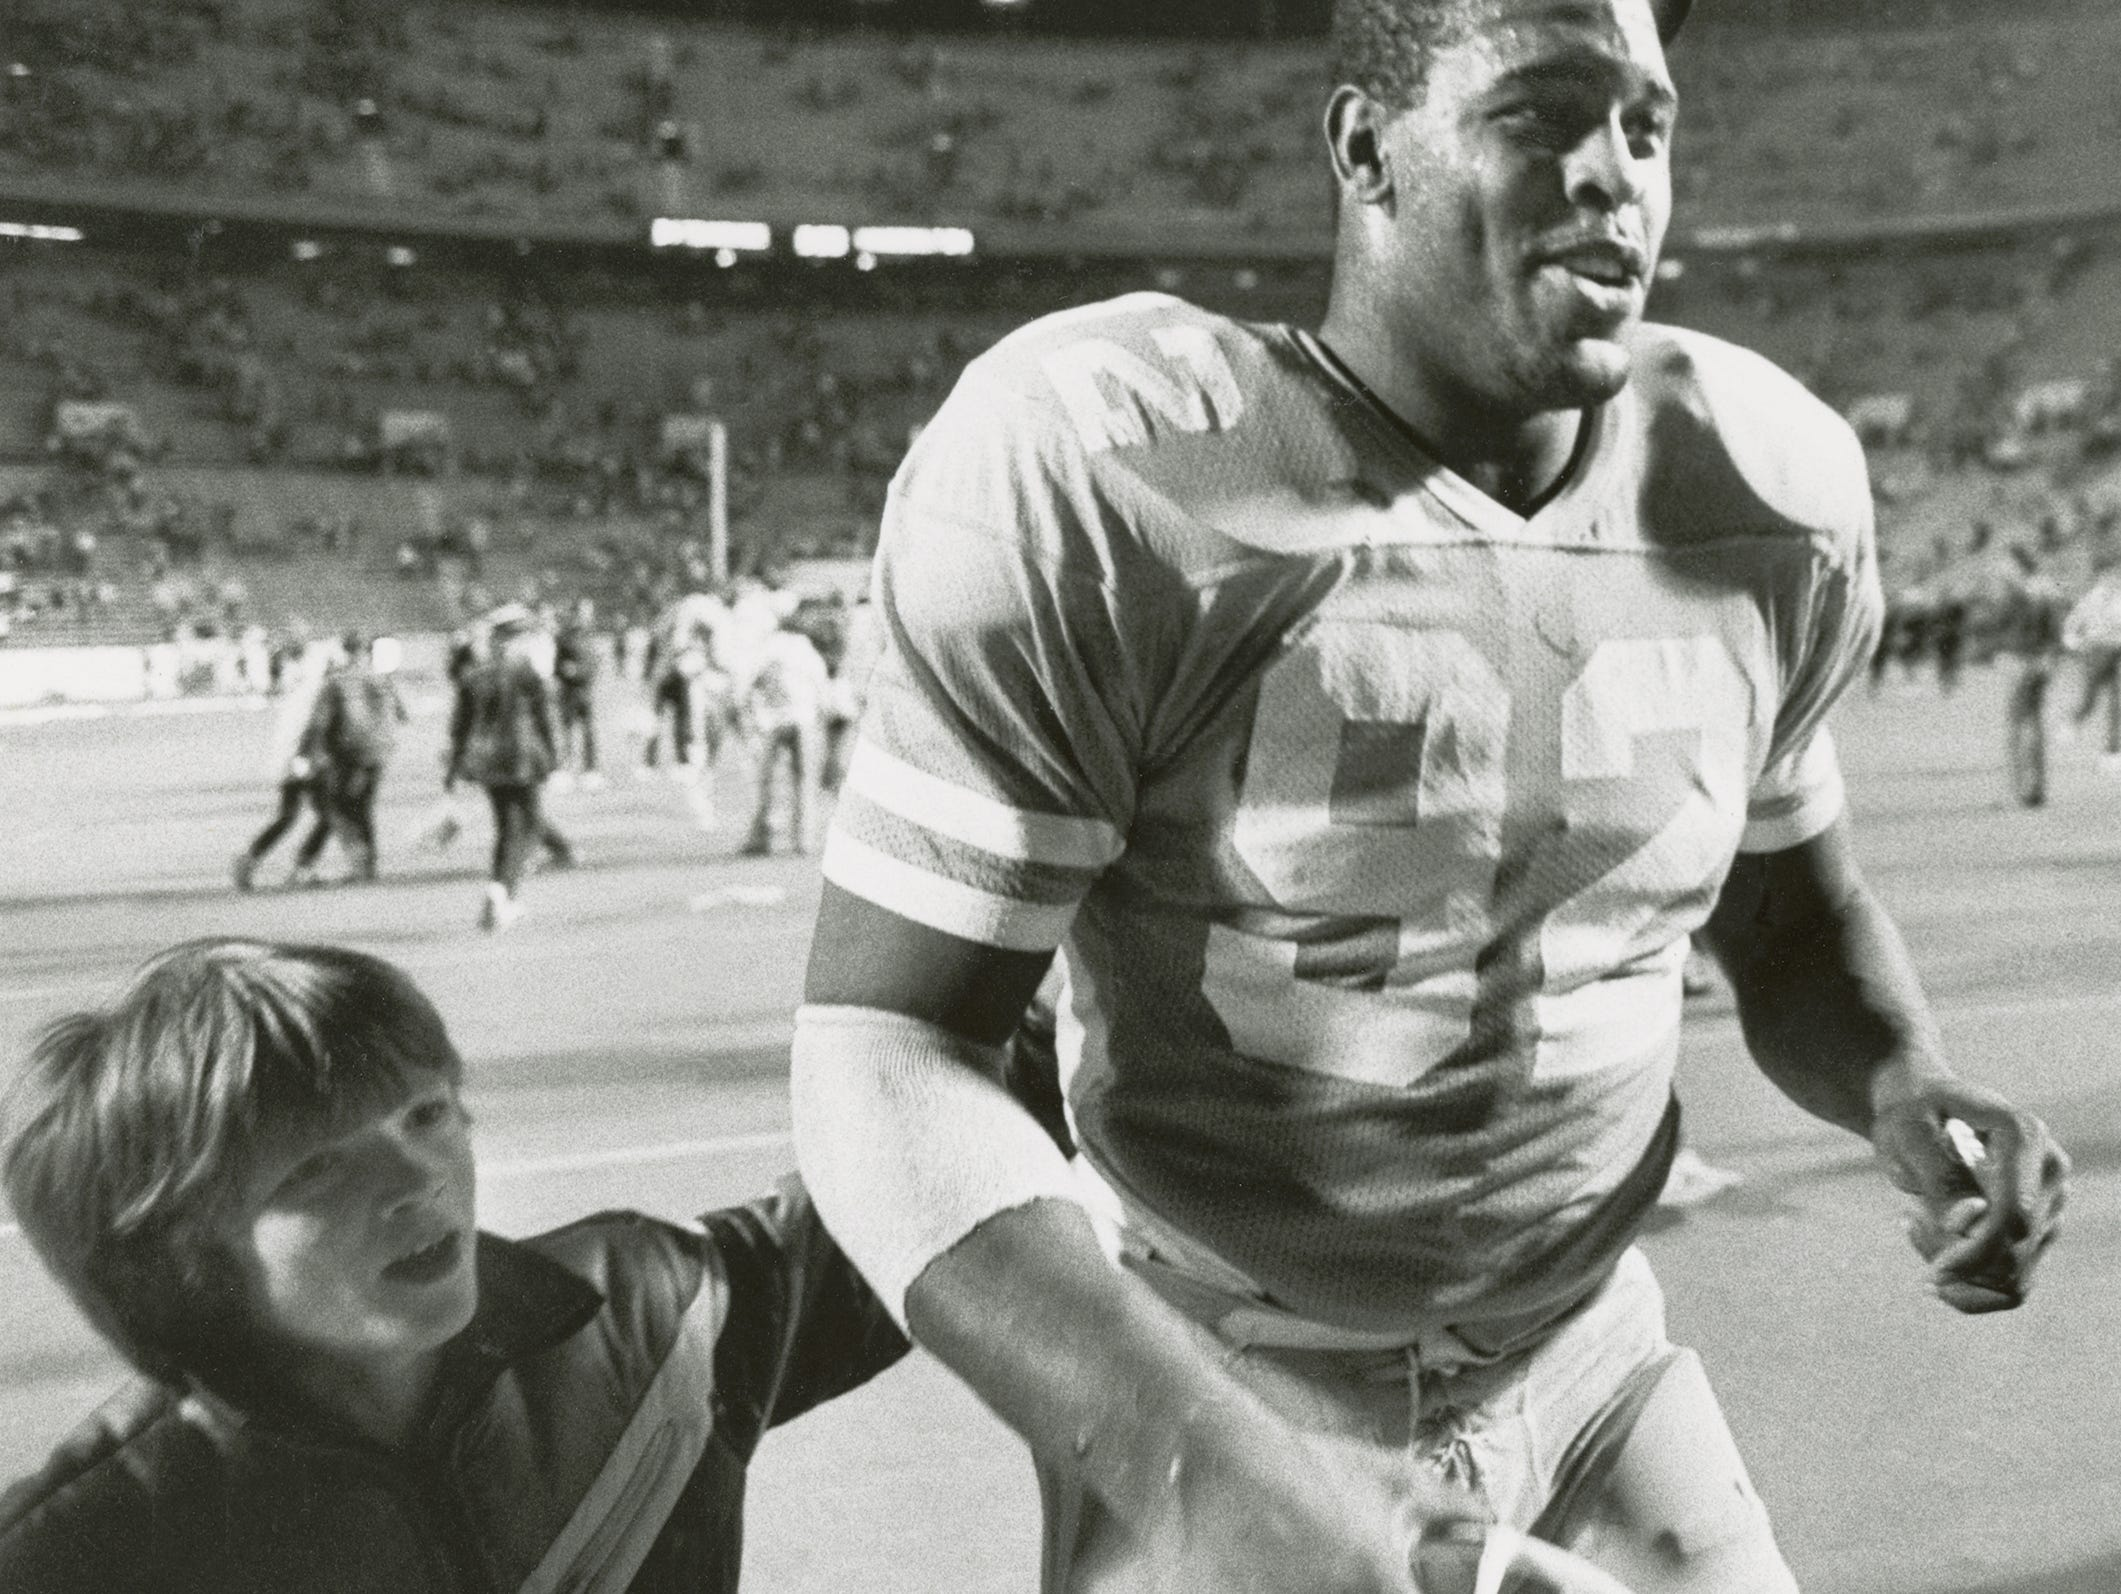 Reggie White, University of Tennessee defensive tackle 1980-83. All-American, SEC player of the year, and team captain in his senior season. Member College Football Hall of Fame and NFL Hall of Fame. Died Dec. 26, 2004, age 43.  Photo from Knoxville News Sentinel archive, undated.